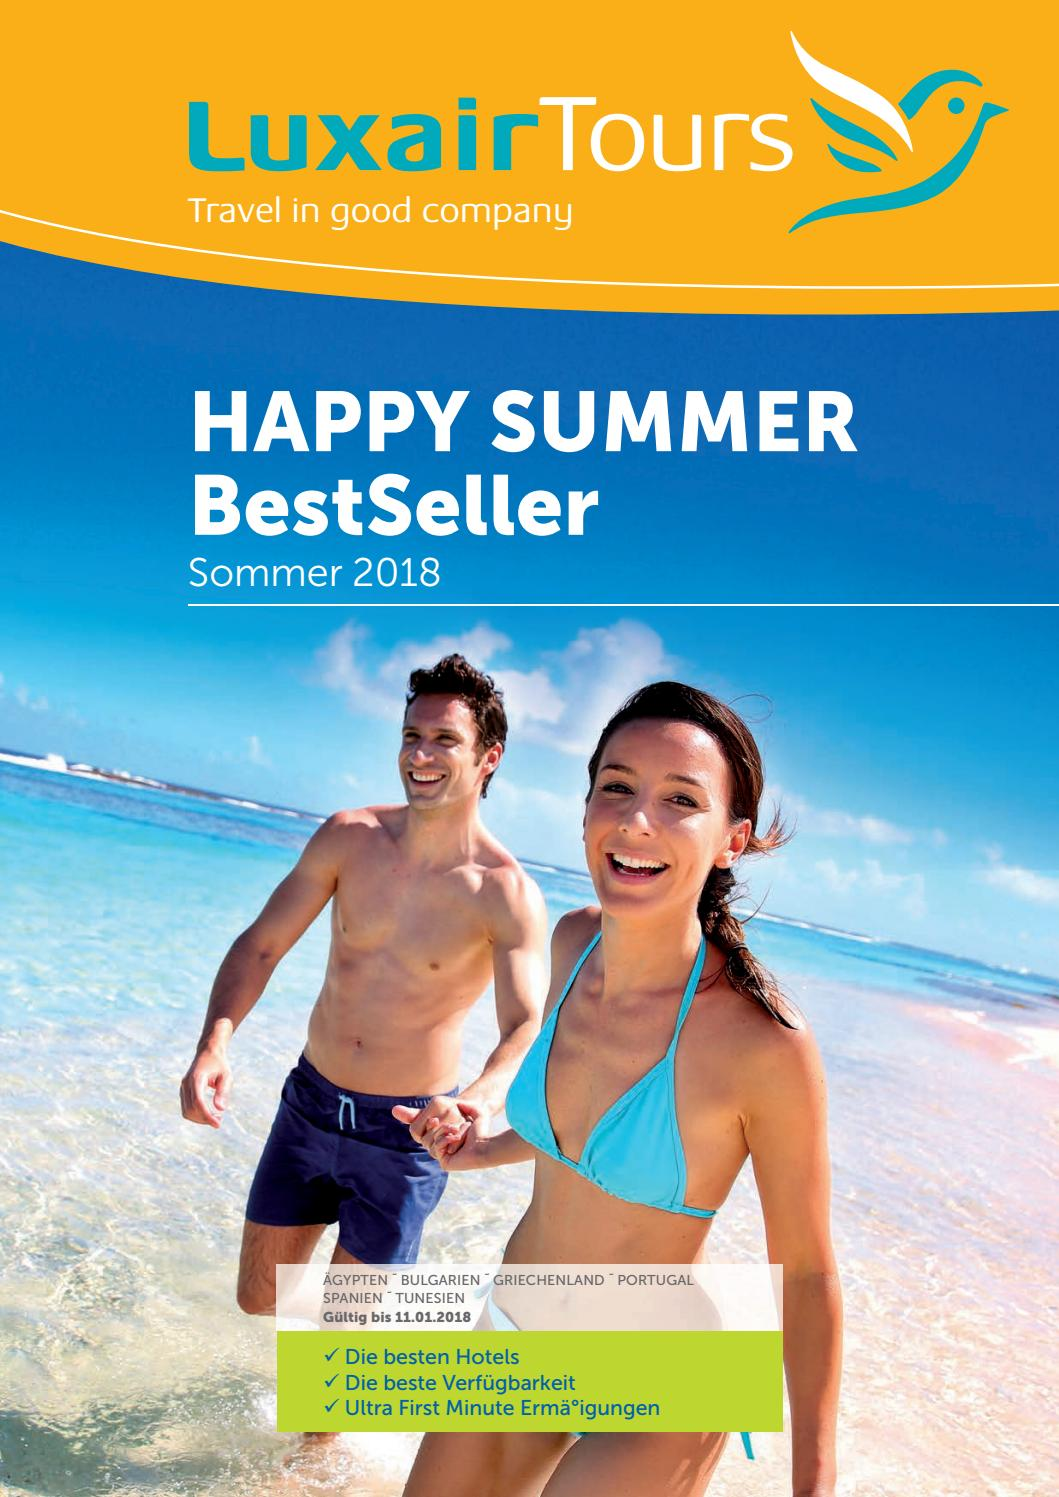 Beste Sofabetten 2018 Holidays Luxairtours Happy Summer Bestseller Sommer 2018 By Wltt S A Issuu